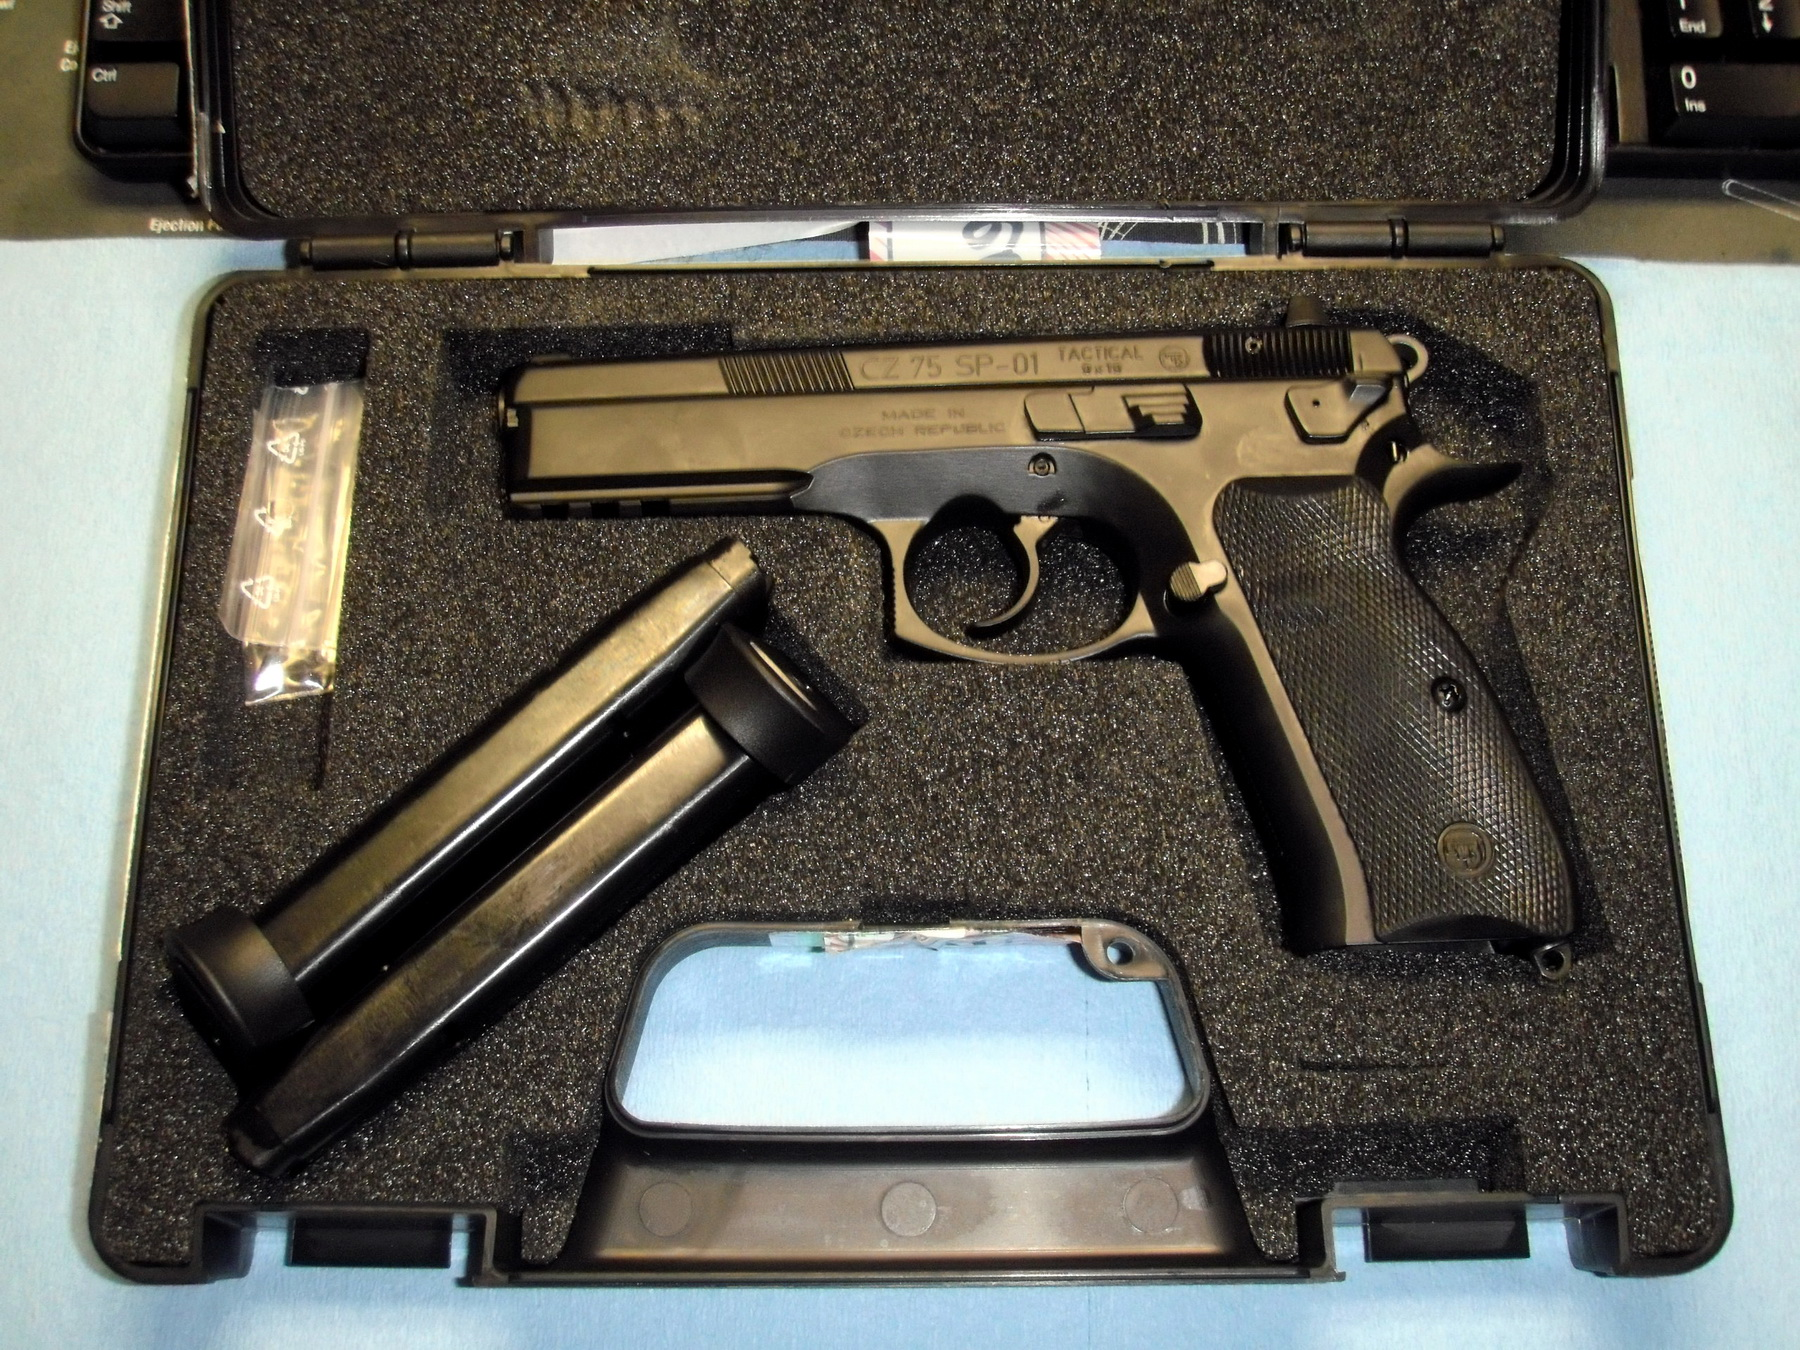 Review of the CZ75 SP01 Tactical unicorn